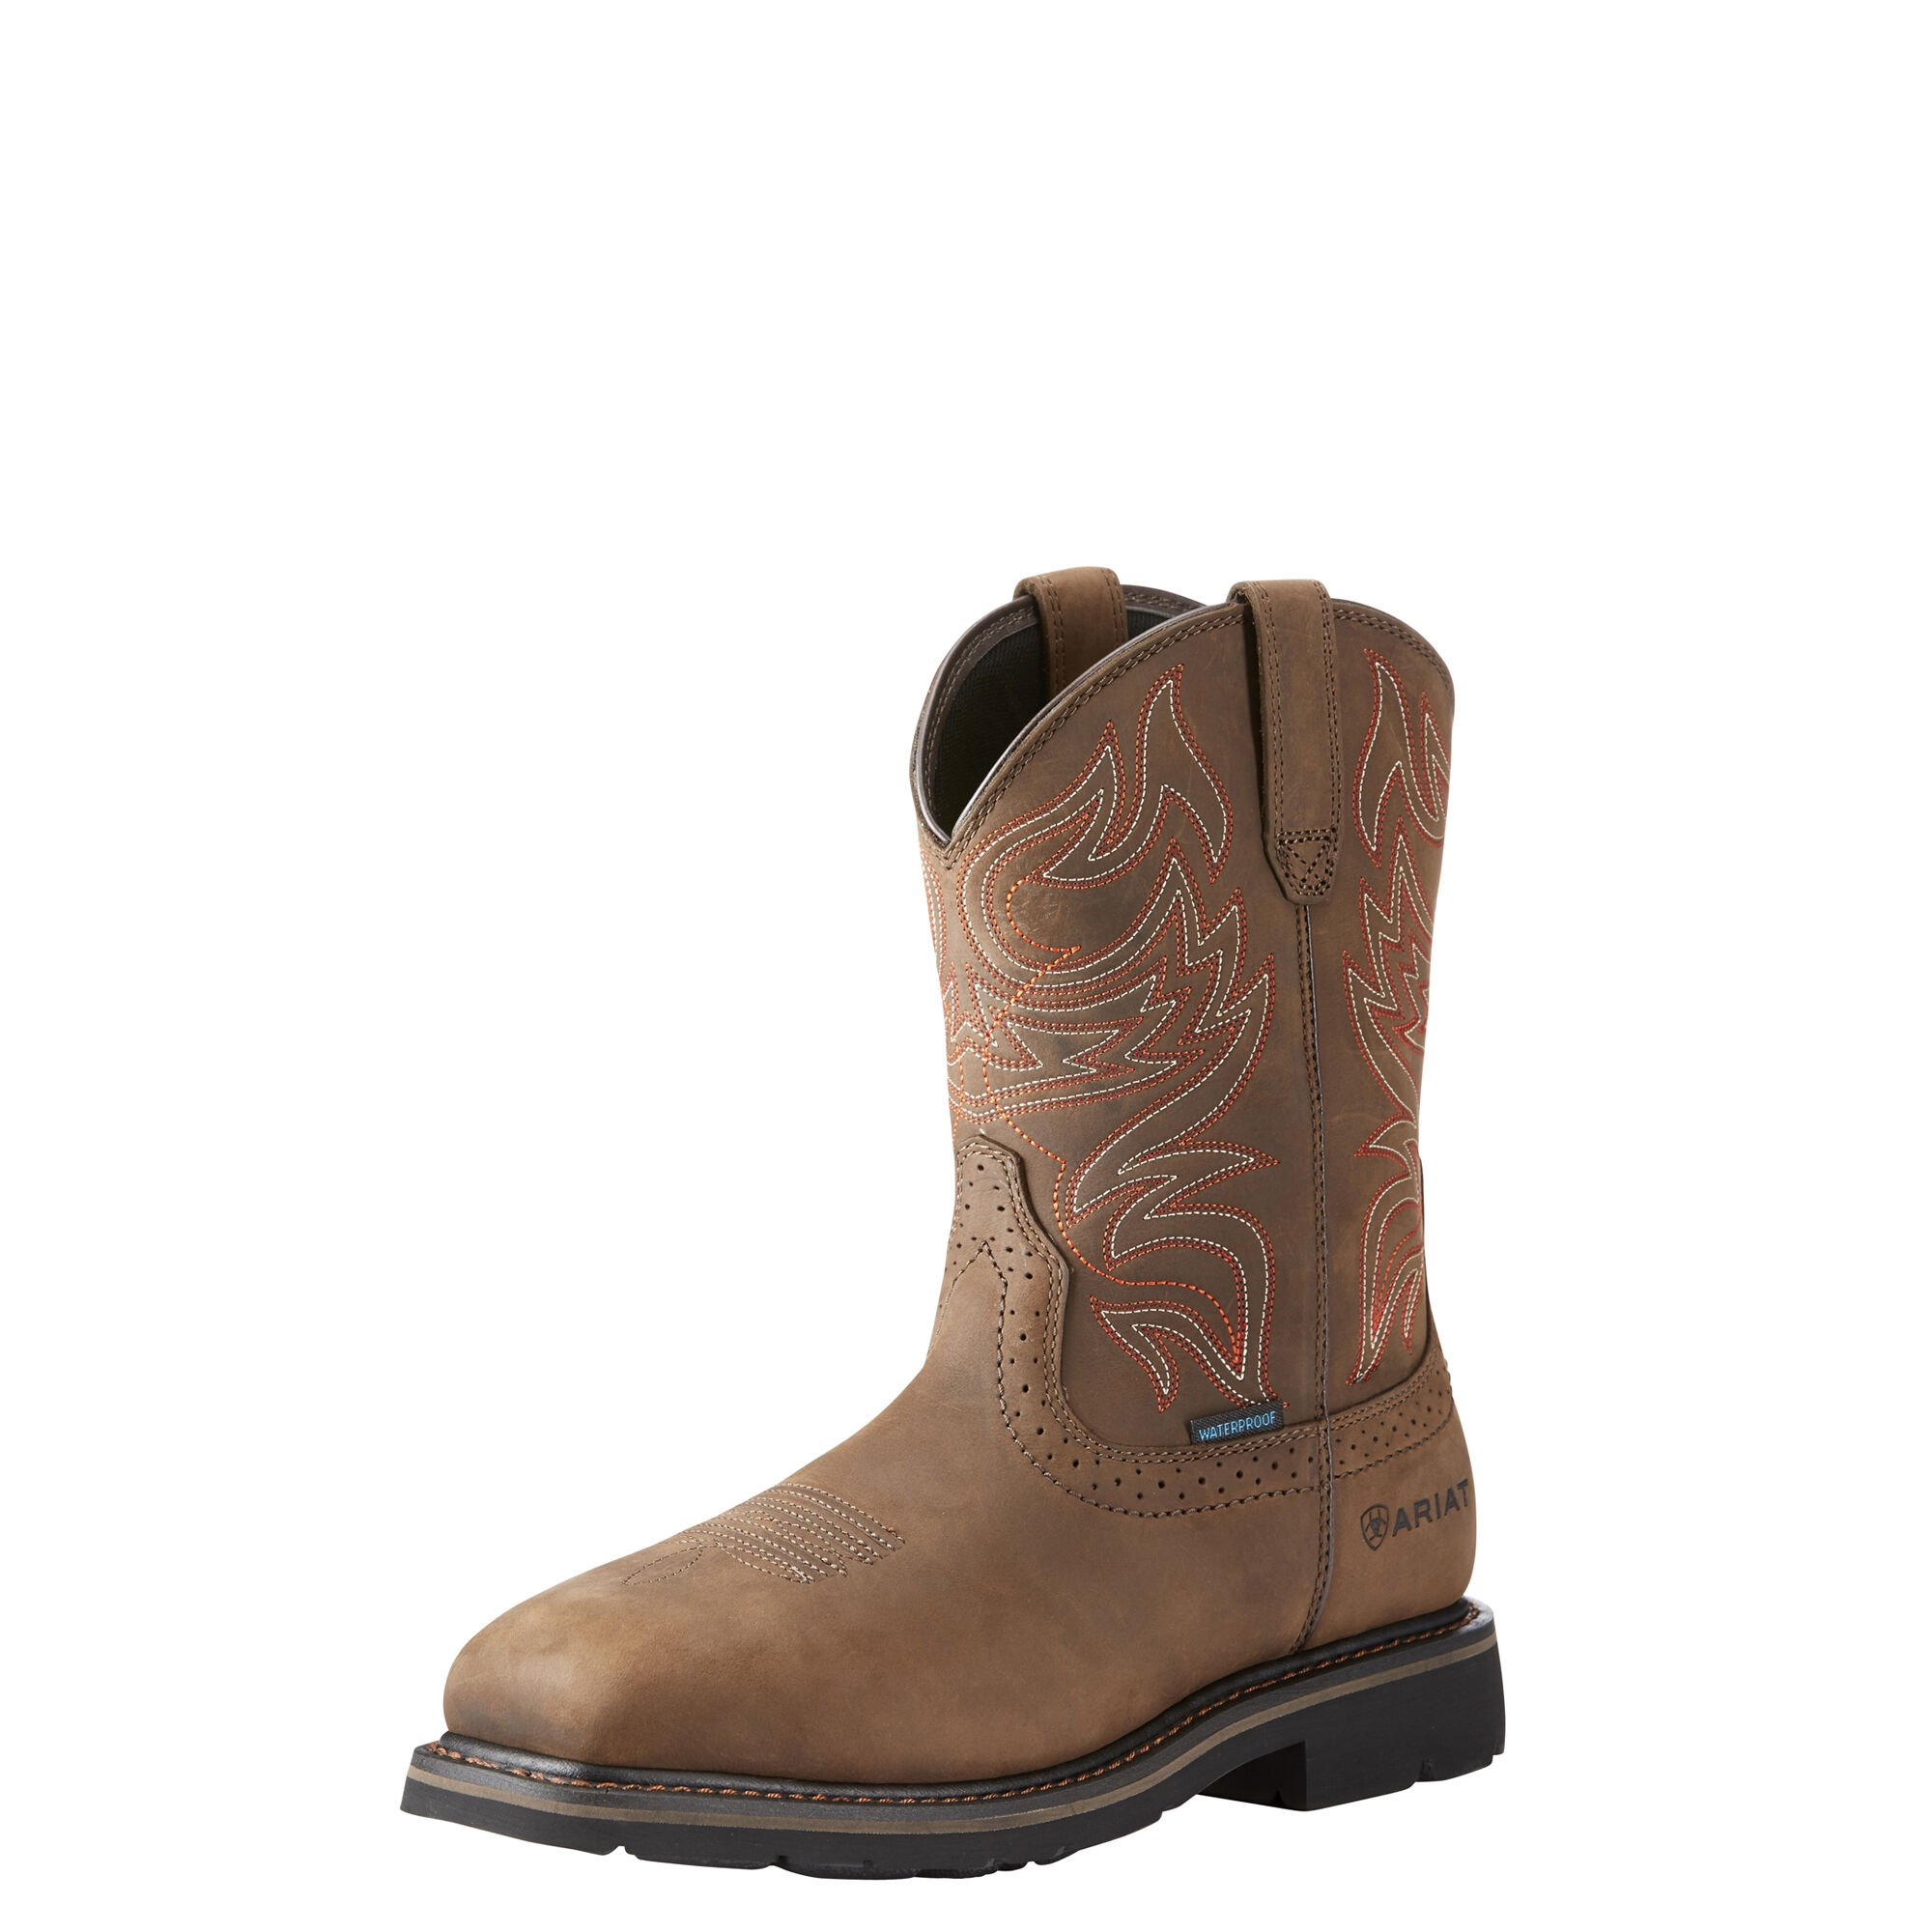 Sierra Delta Waterproof Work Boot